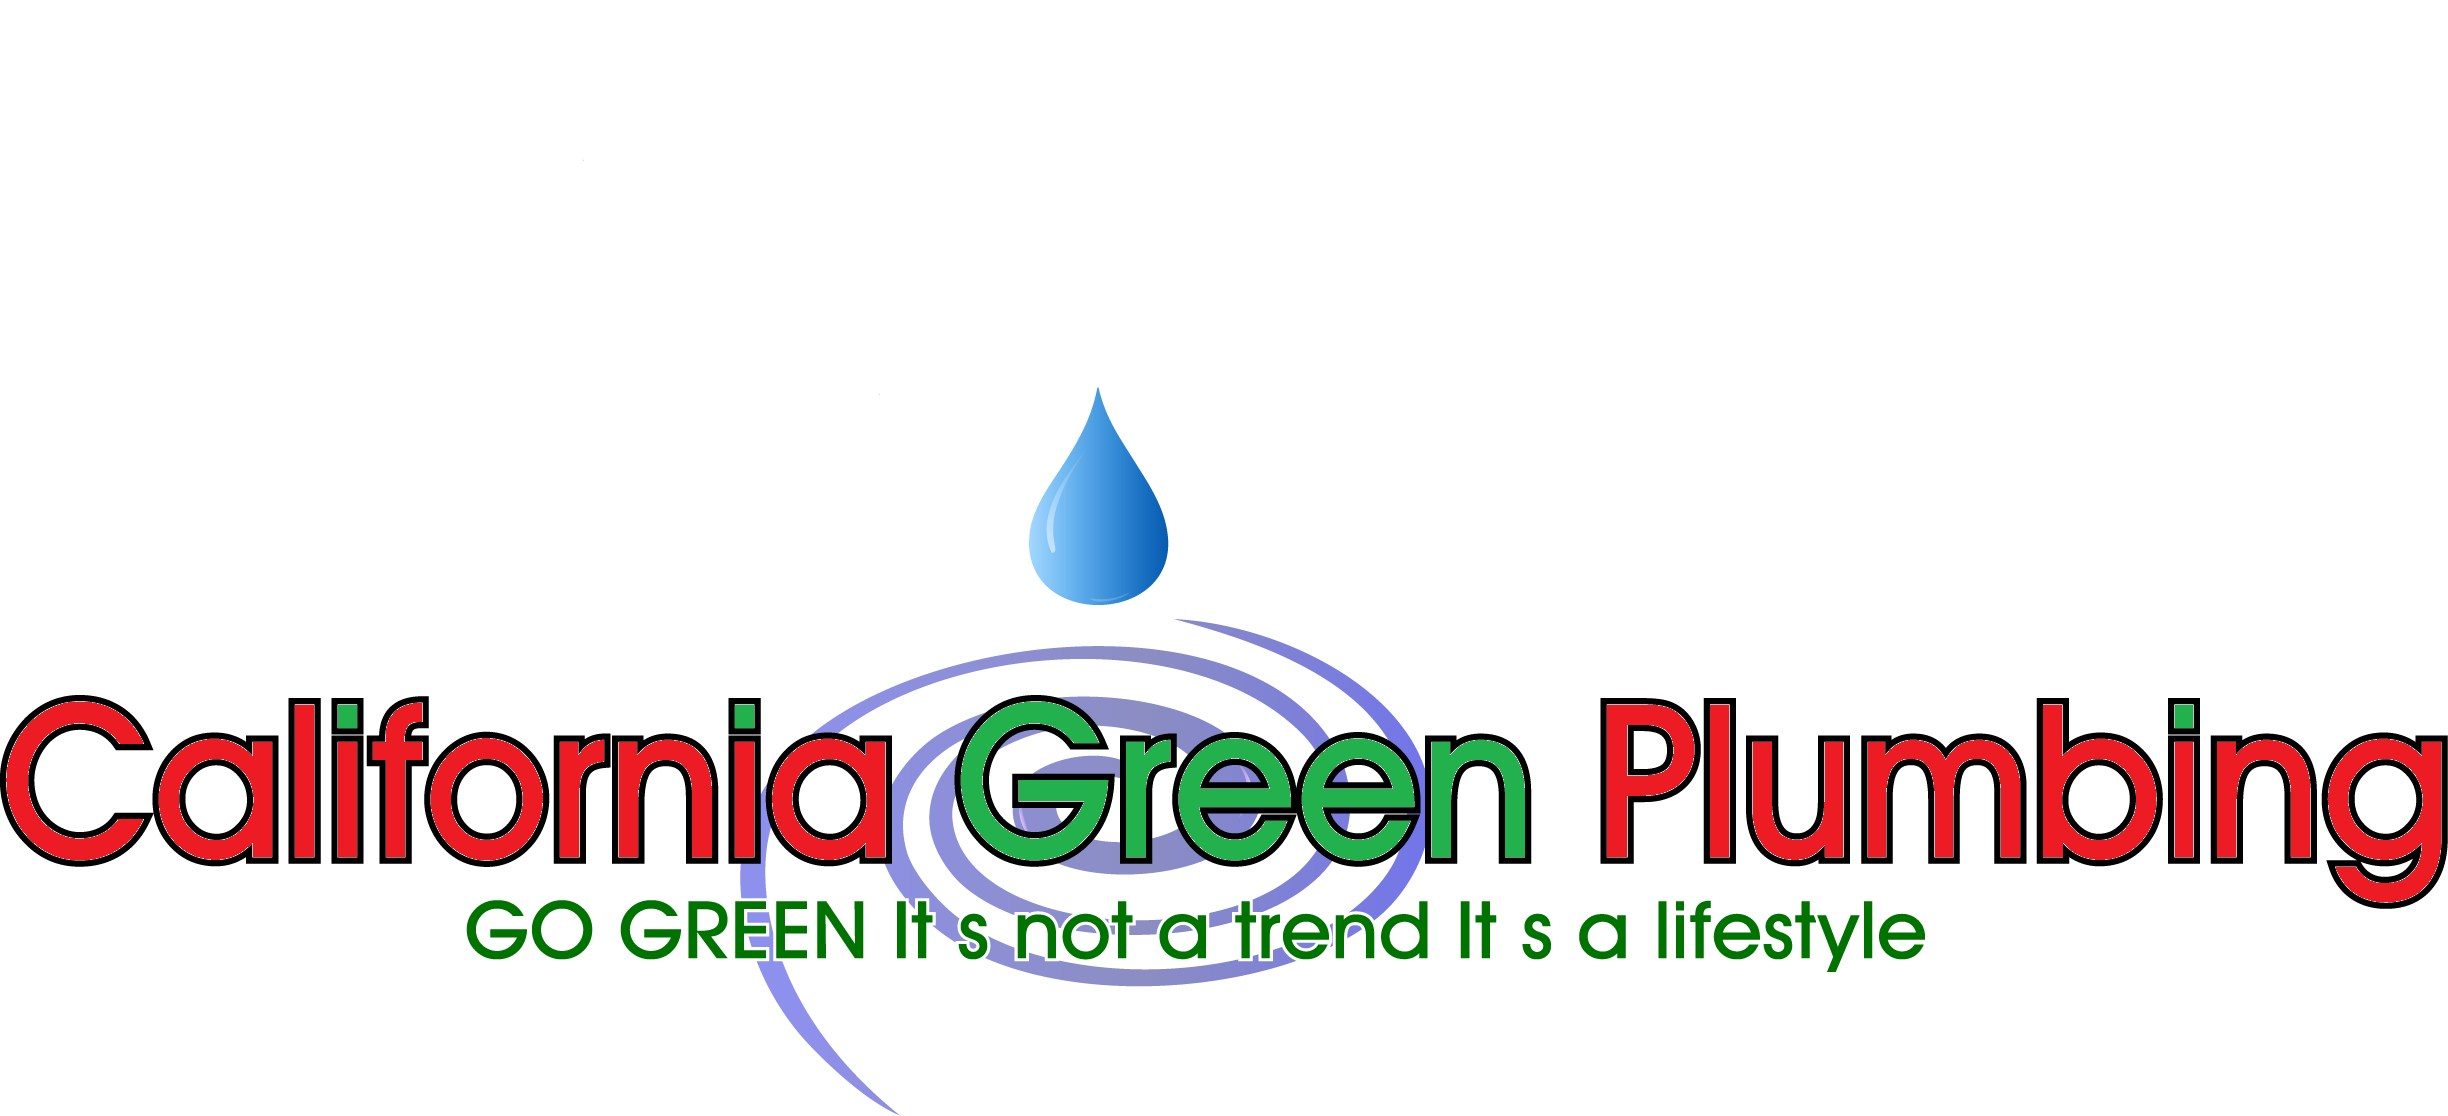 California Green Plumbing